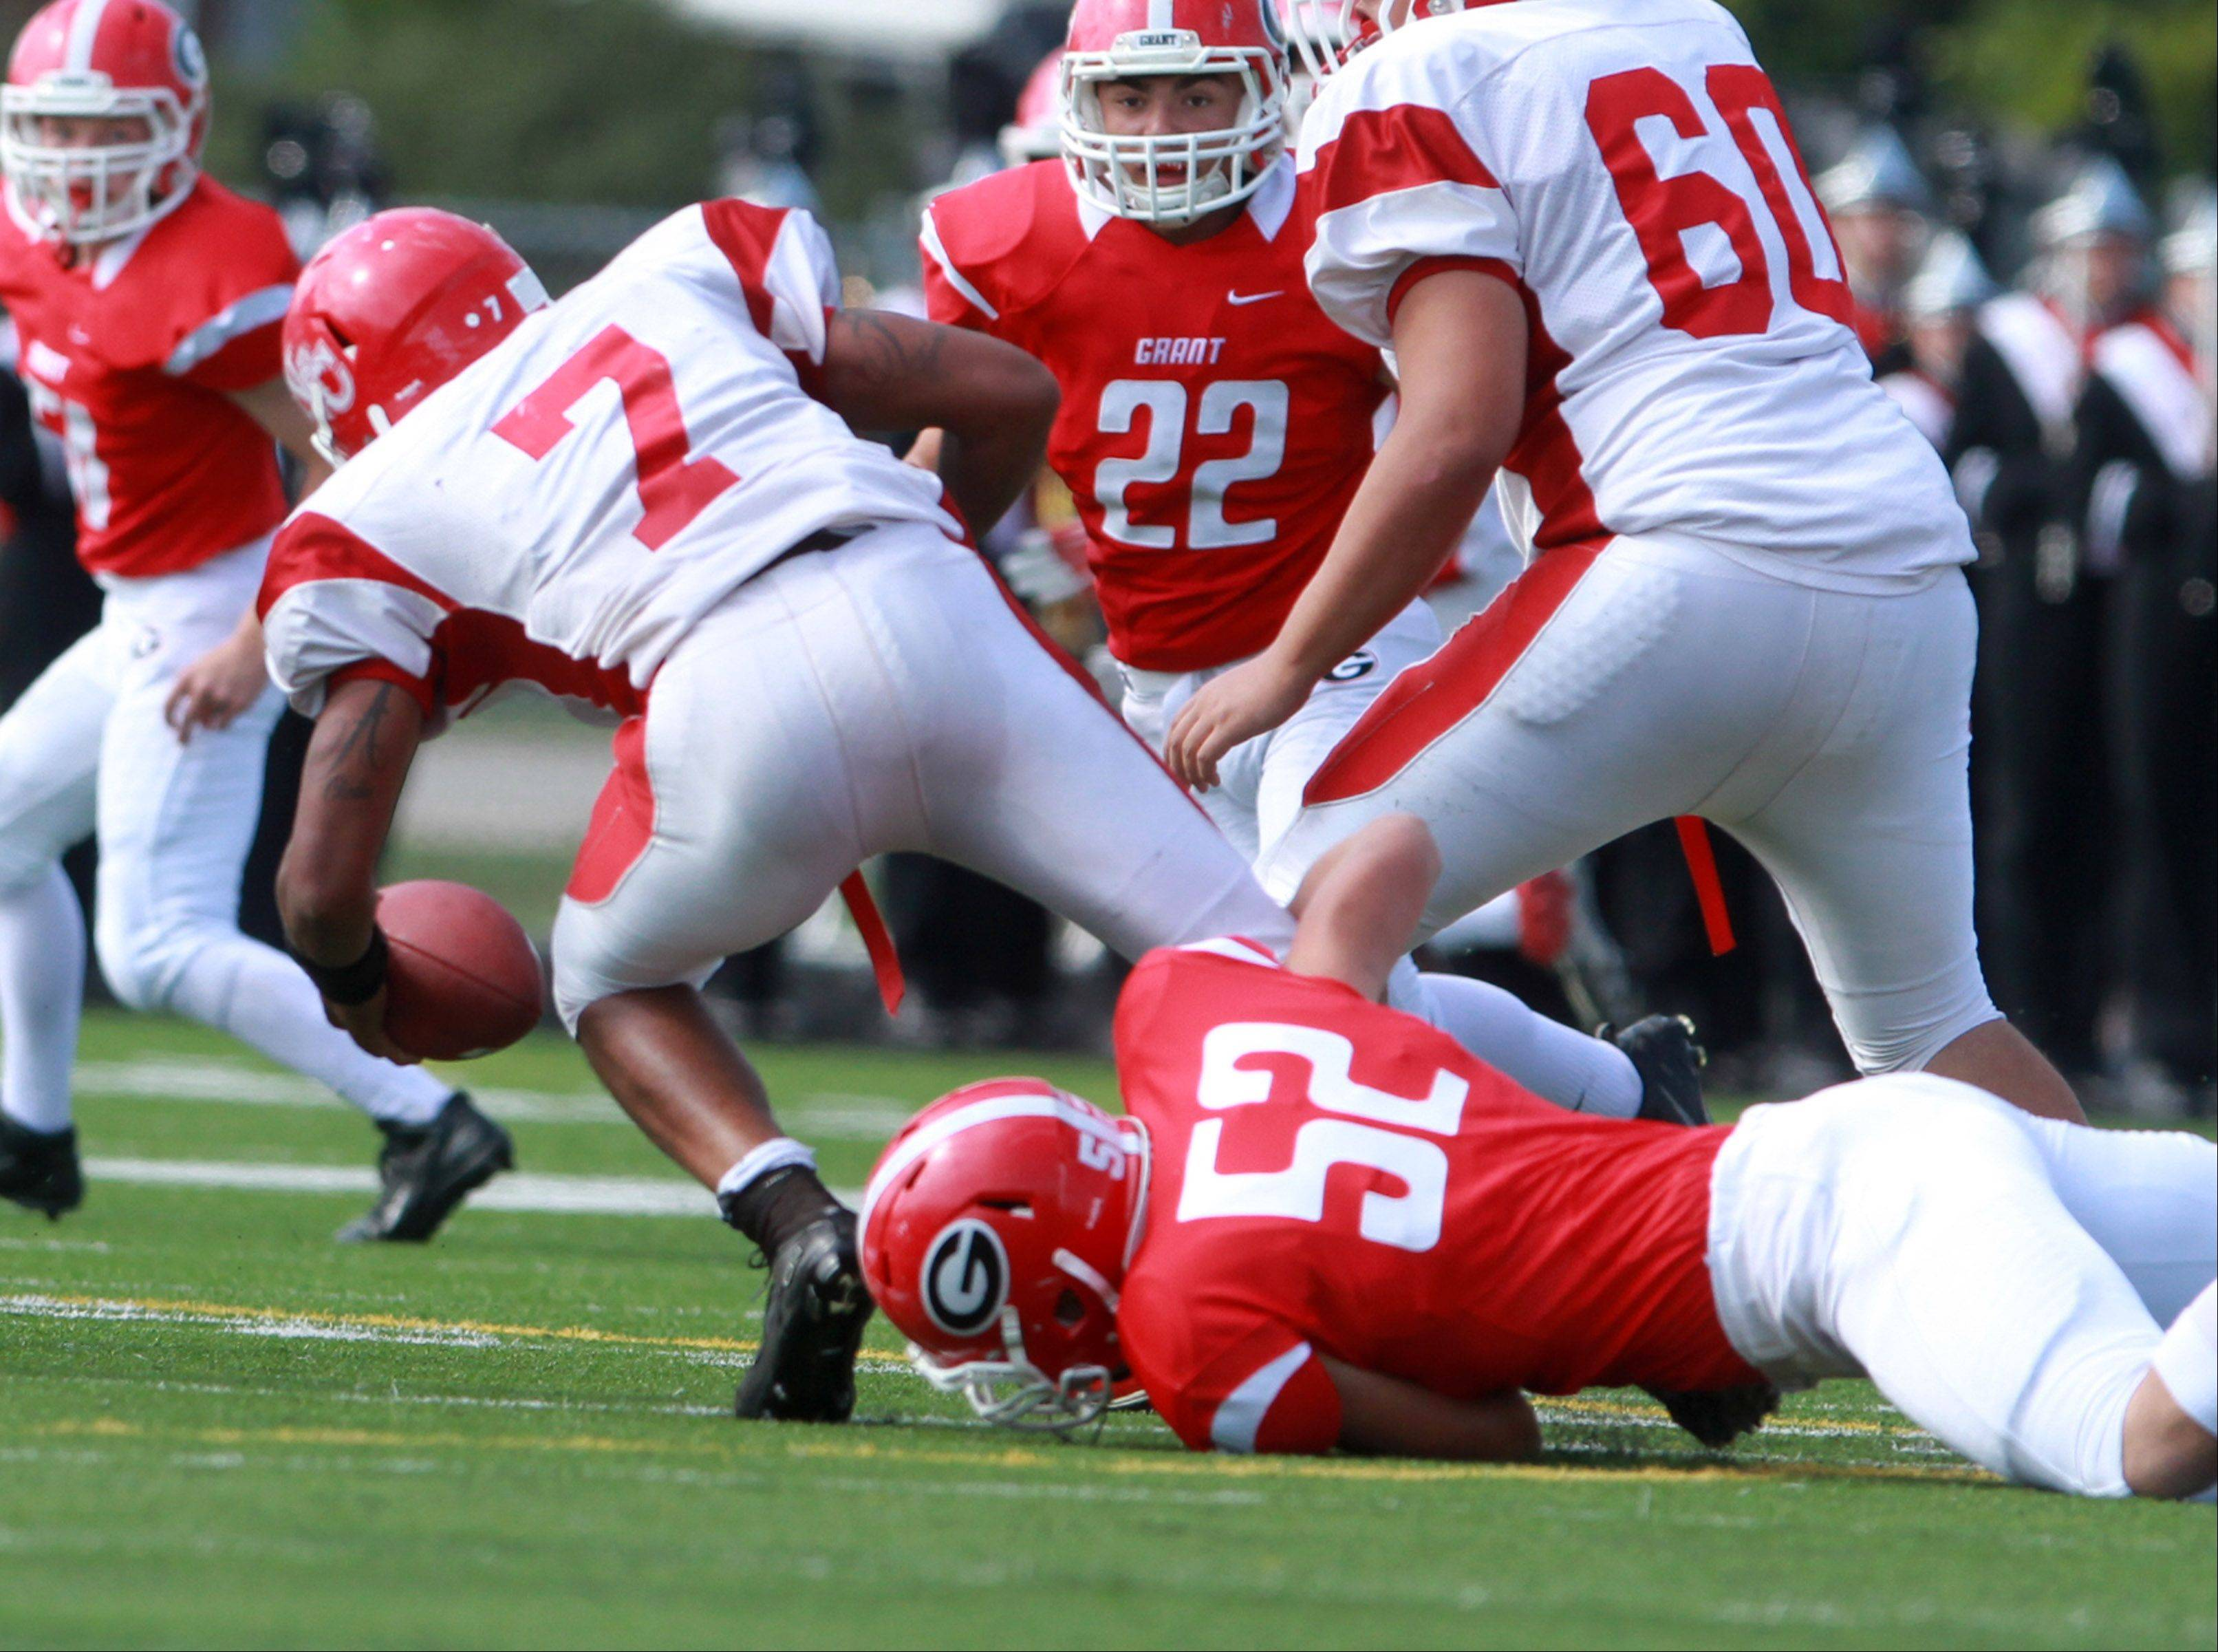 Grant defensive end Patrick Purvin sacks North Chicago quarterback Arnold Shead at Grant on Saturday.